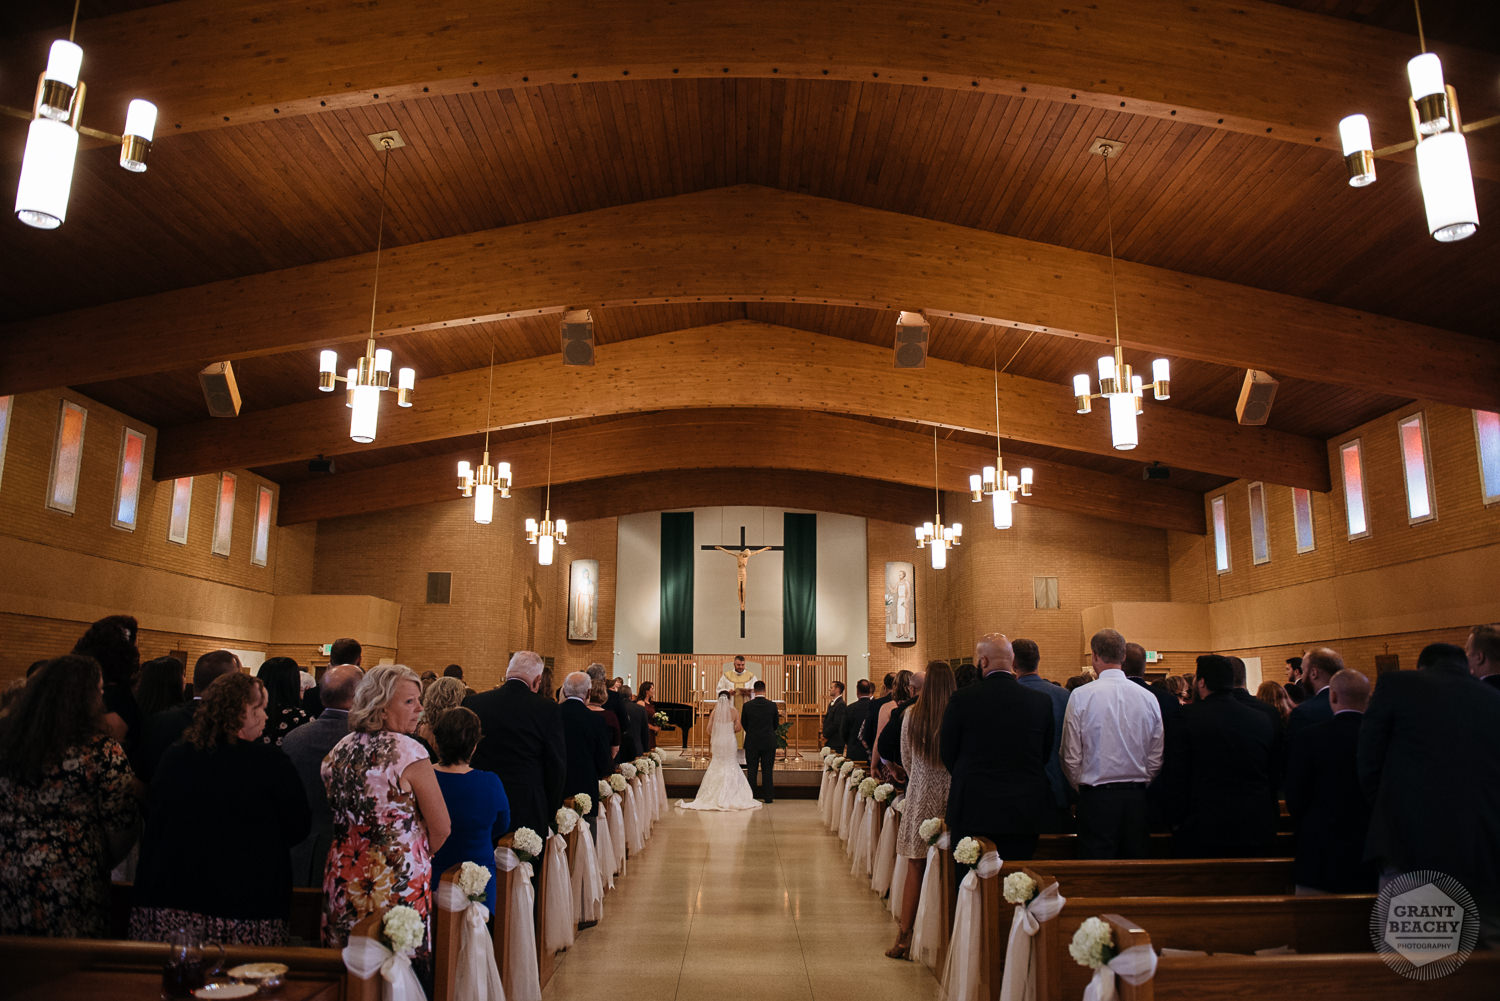 Grant Beachy wedding photographer, south bend, elkhart, chicago-15.jpg